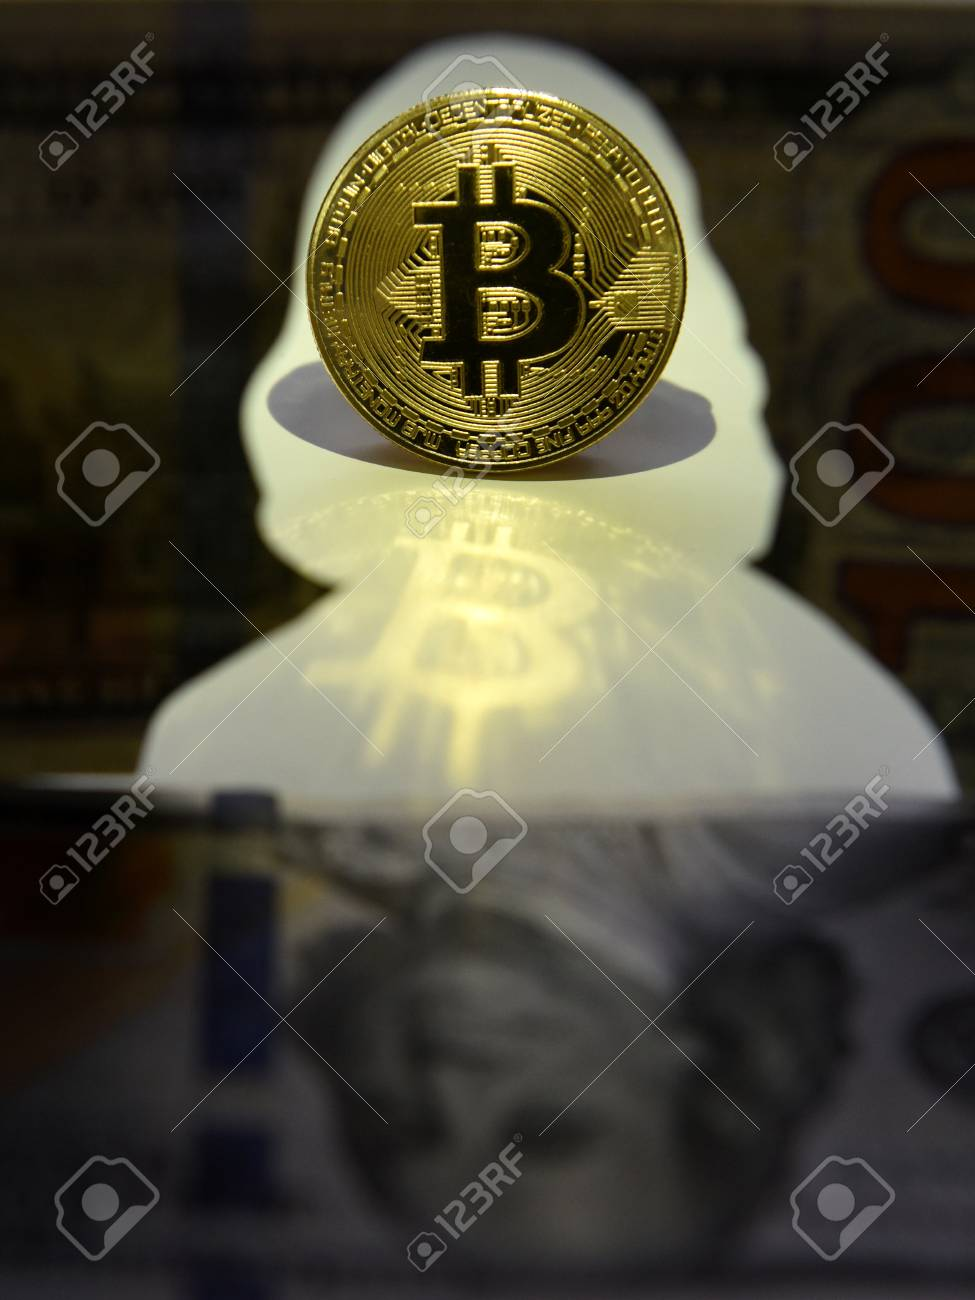 Are bitcoins the new world currency sports betting money management